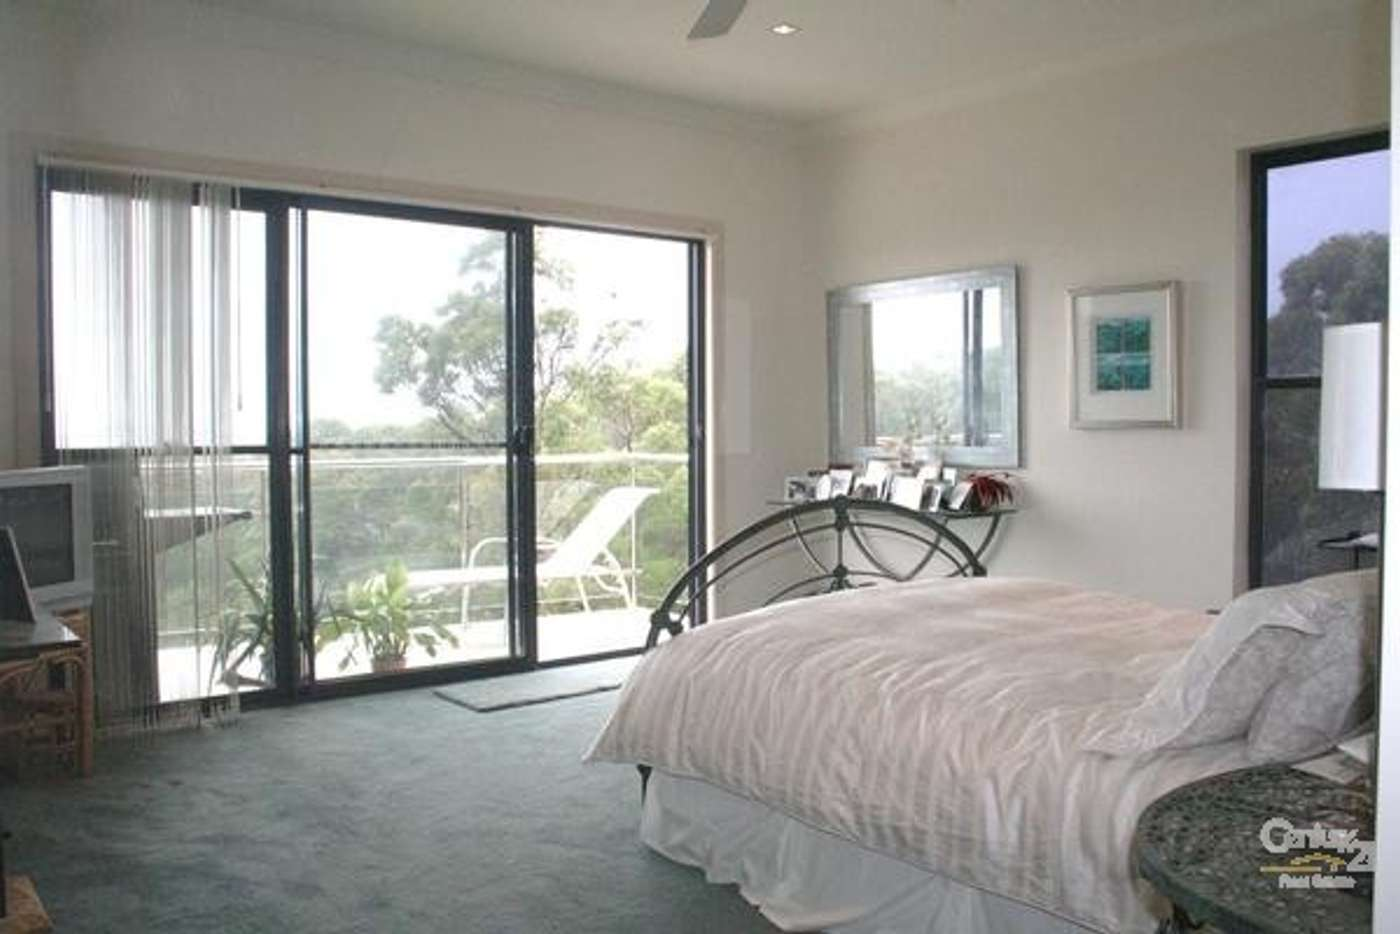 Sixth view of Homely house listing, 58 Viney Creek Rd, Tea Gardens NSW 2324